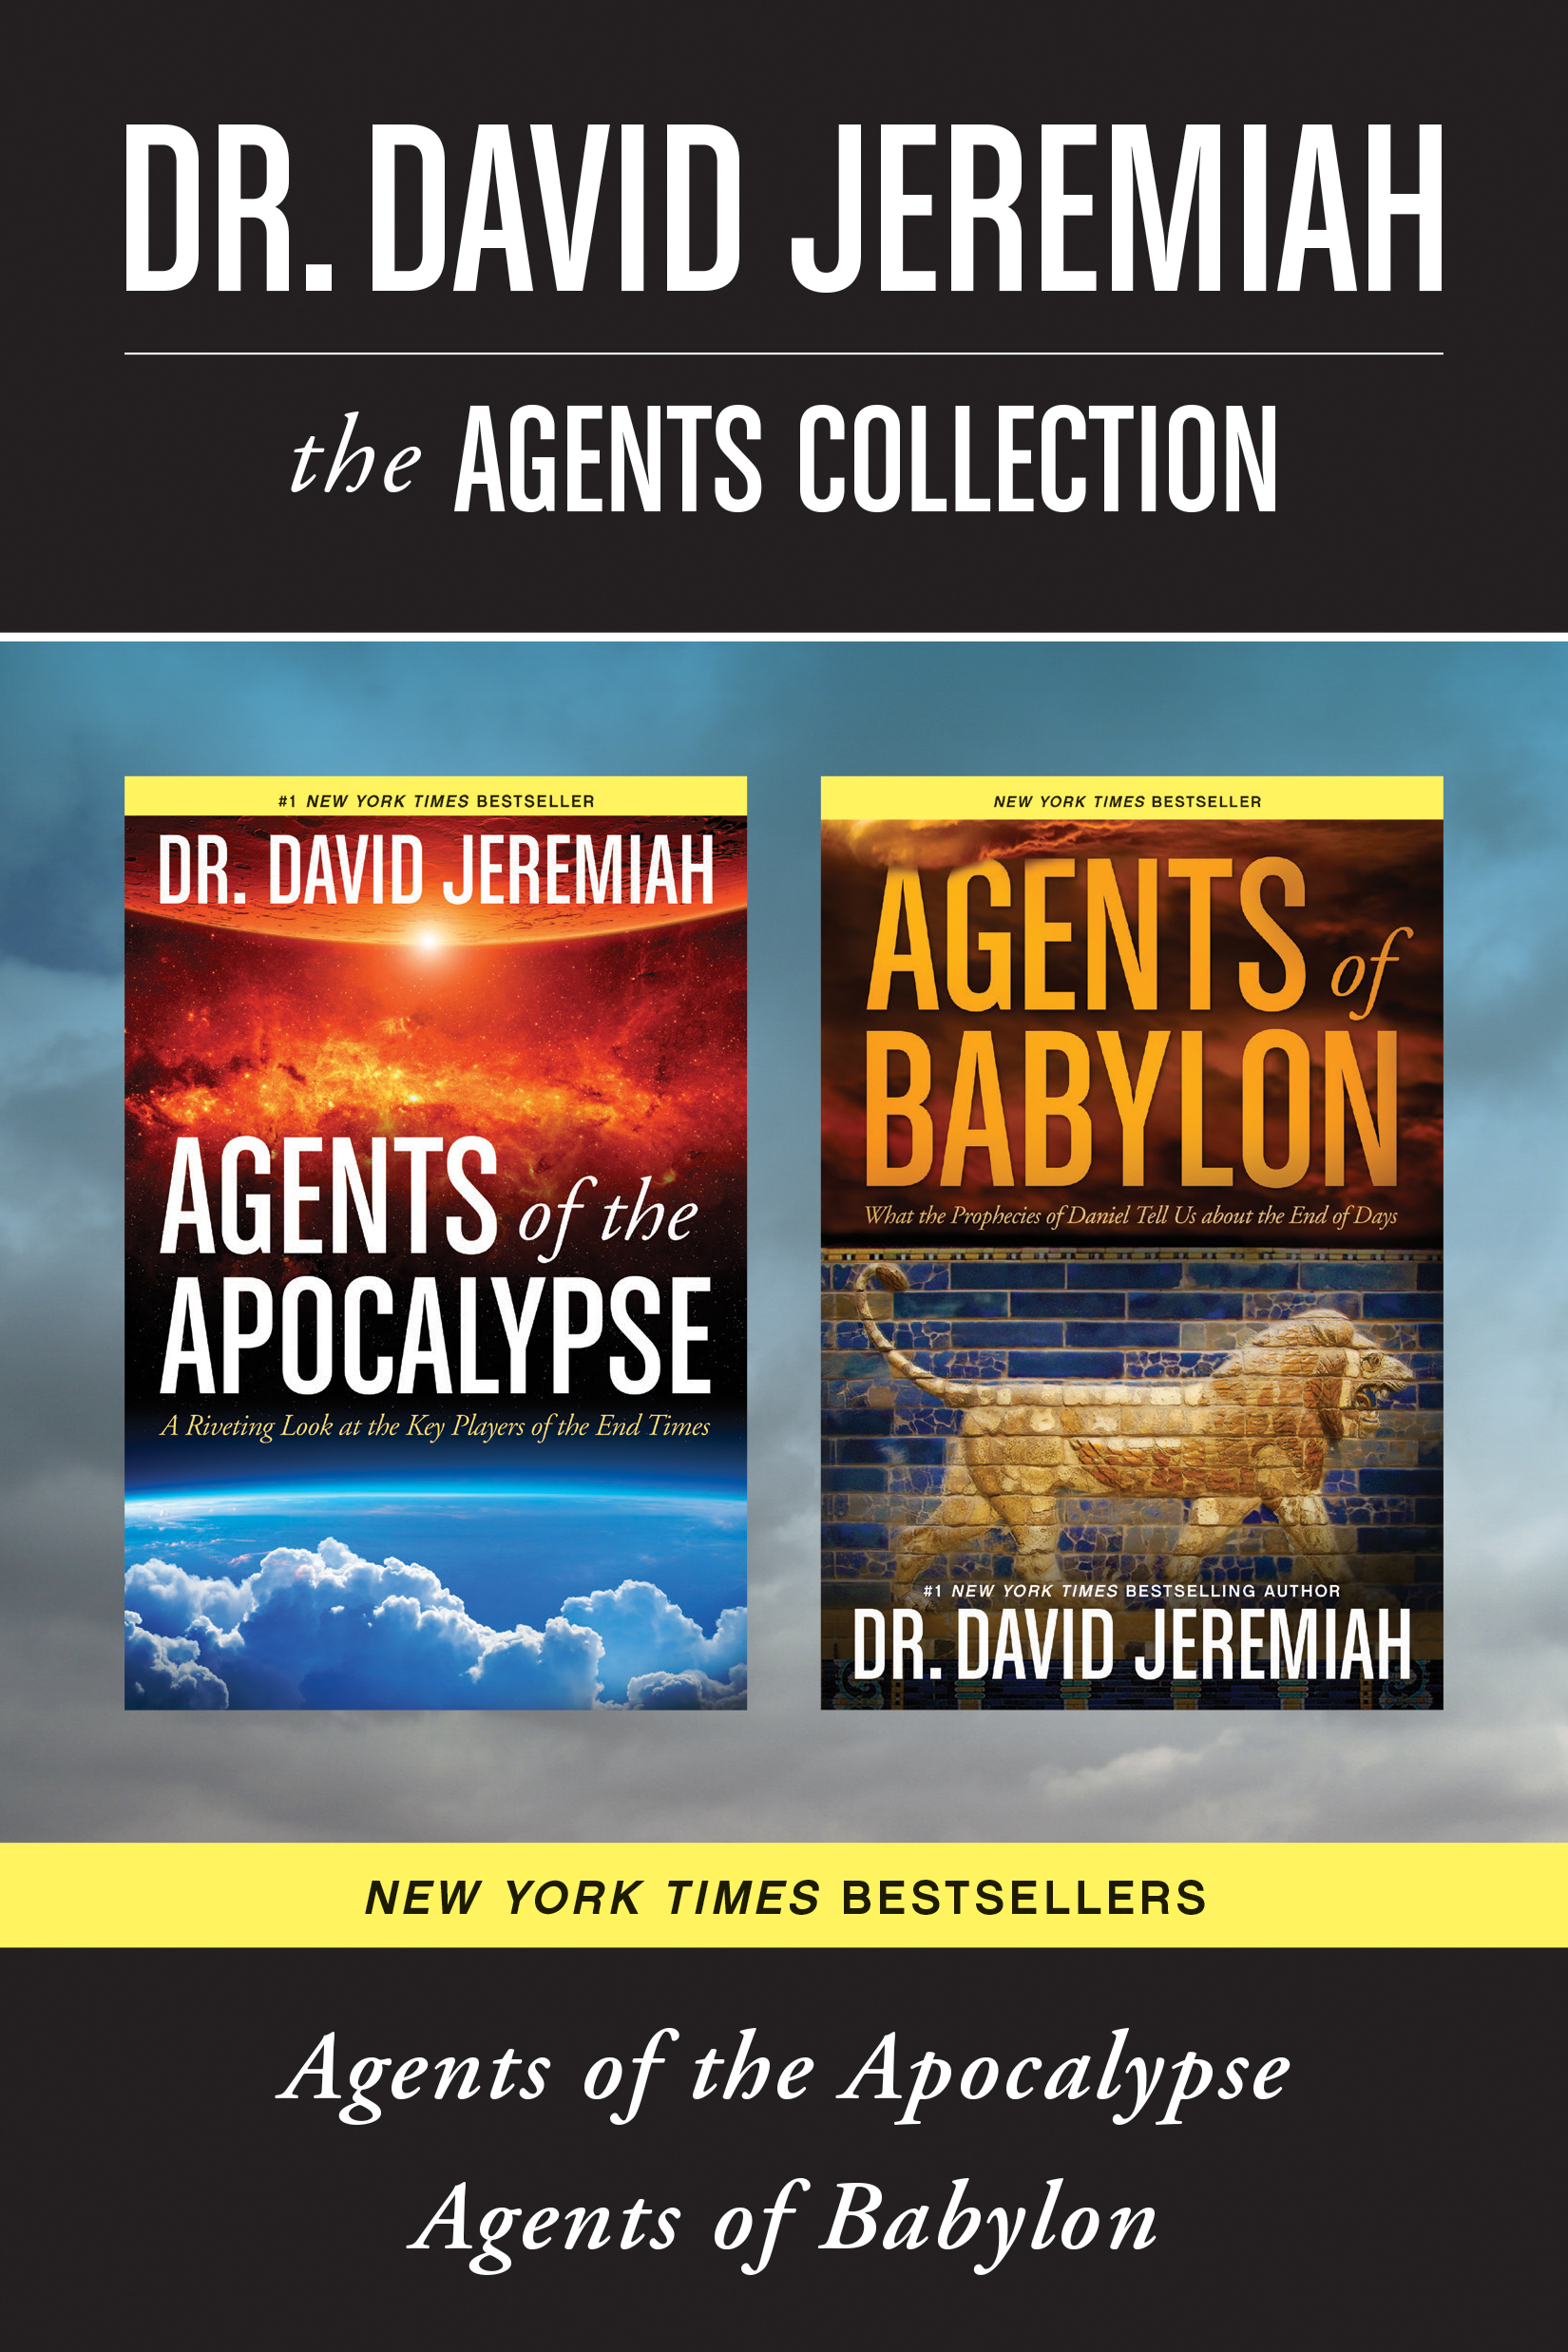 agents of the apocalypse The internet apocalypse trilogy when the internet suddenly stops working, society reels from the loss of flowing data, instant messages, and streaming entertainment.